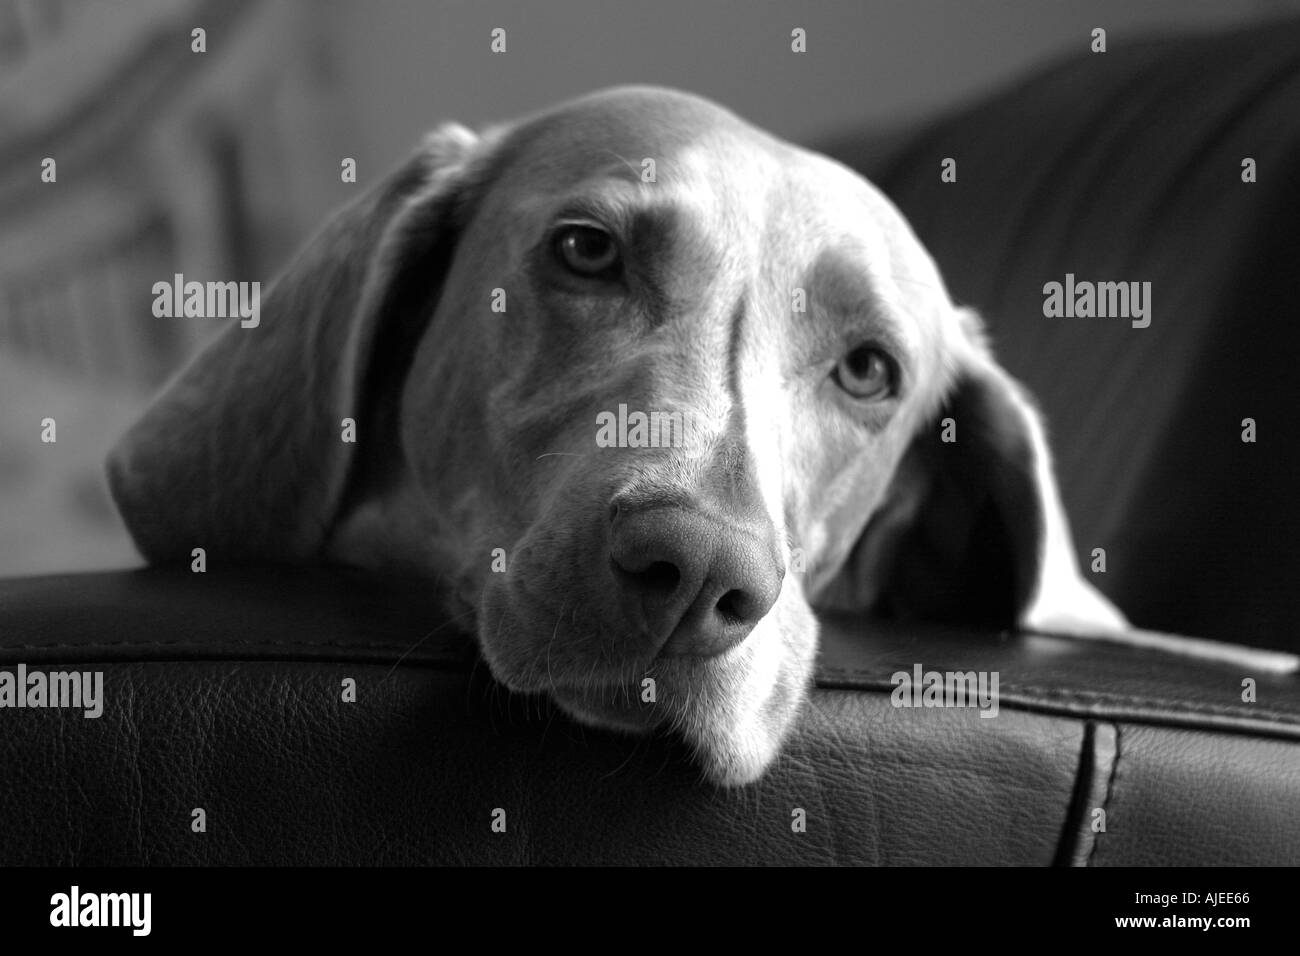 Weimaraner on sofa - Stock Image